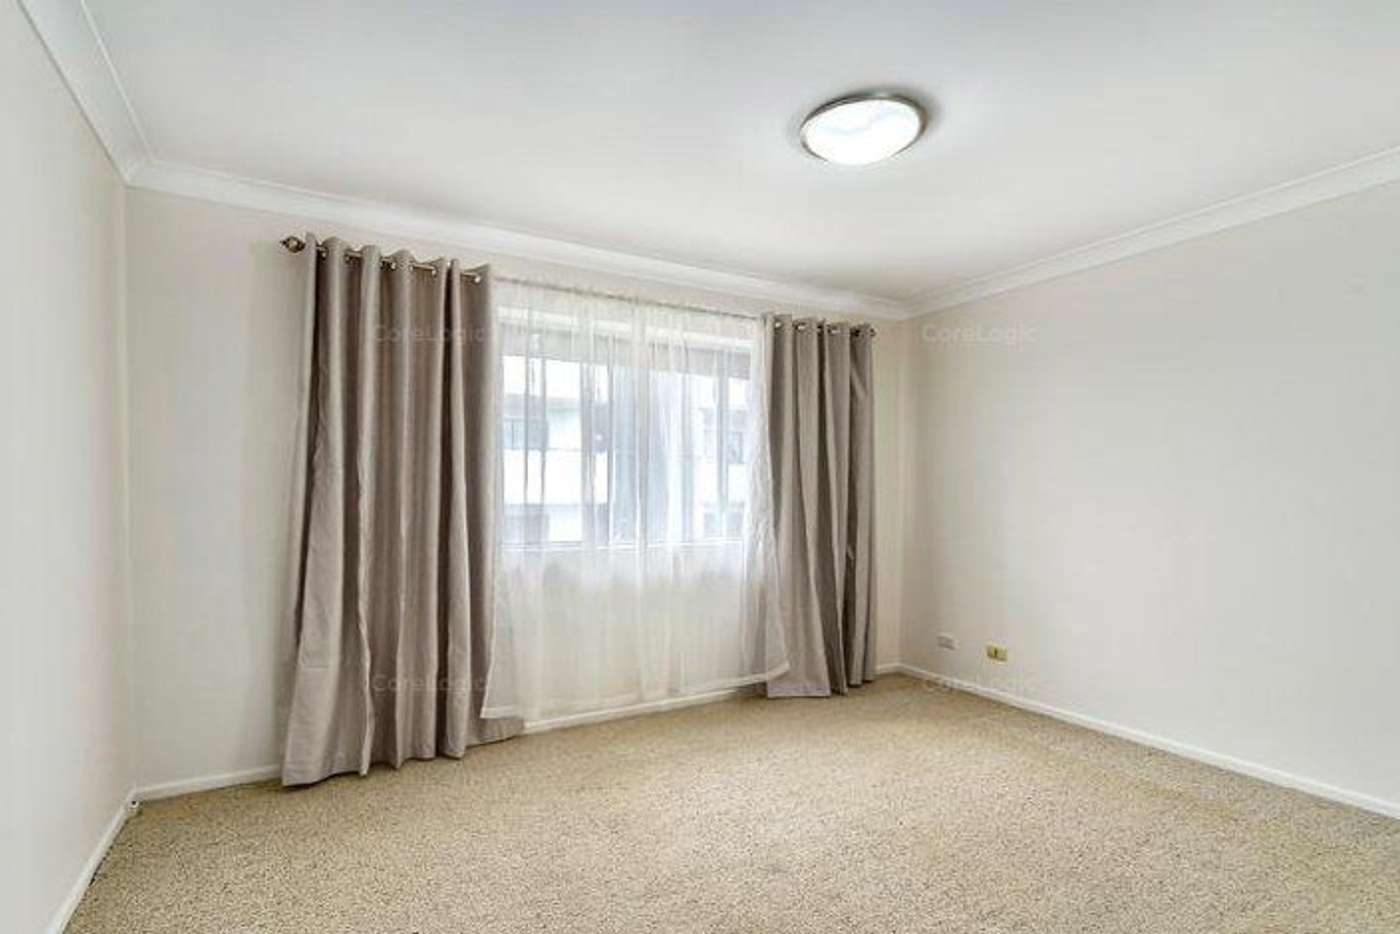 Seventh view of Homely unit listing, 6/60 Wallace Street, Chermside QLD 4032